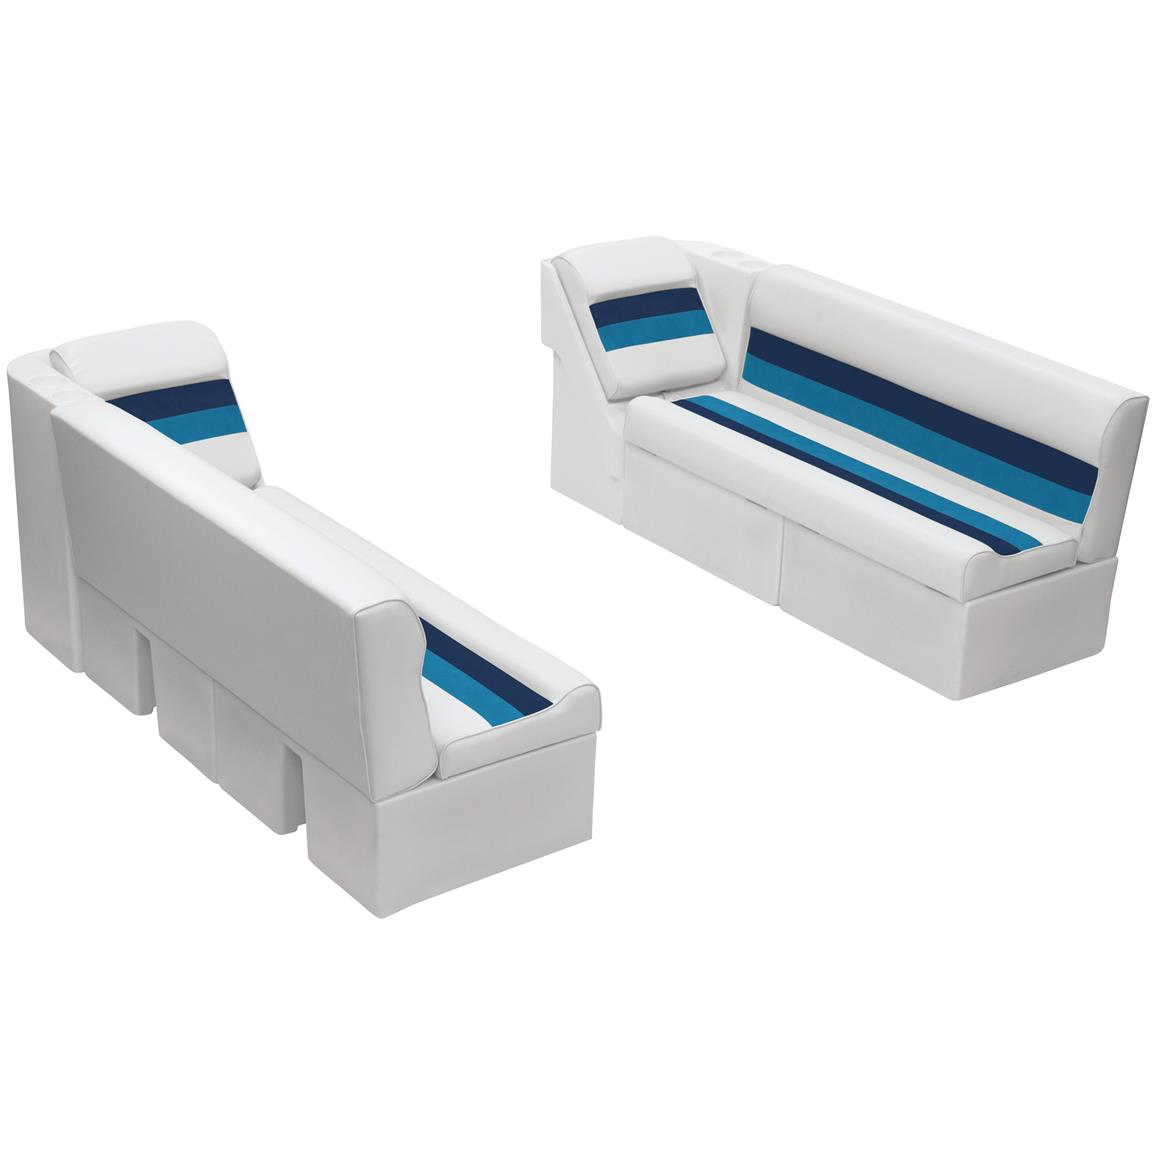 Wise® Deluxe Pontoon 55 inch Bench and Lean Back Seating Group, Color A: White / Navy / Blue